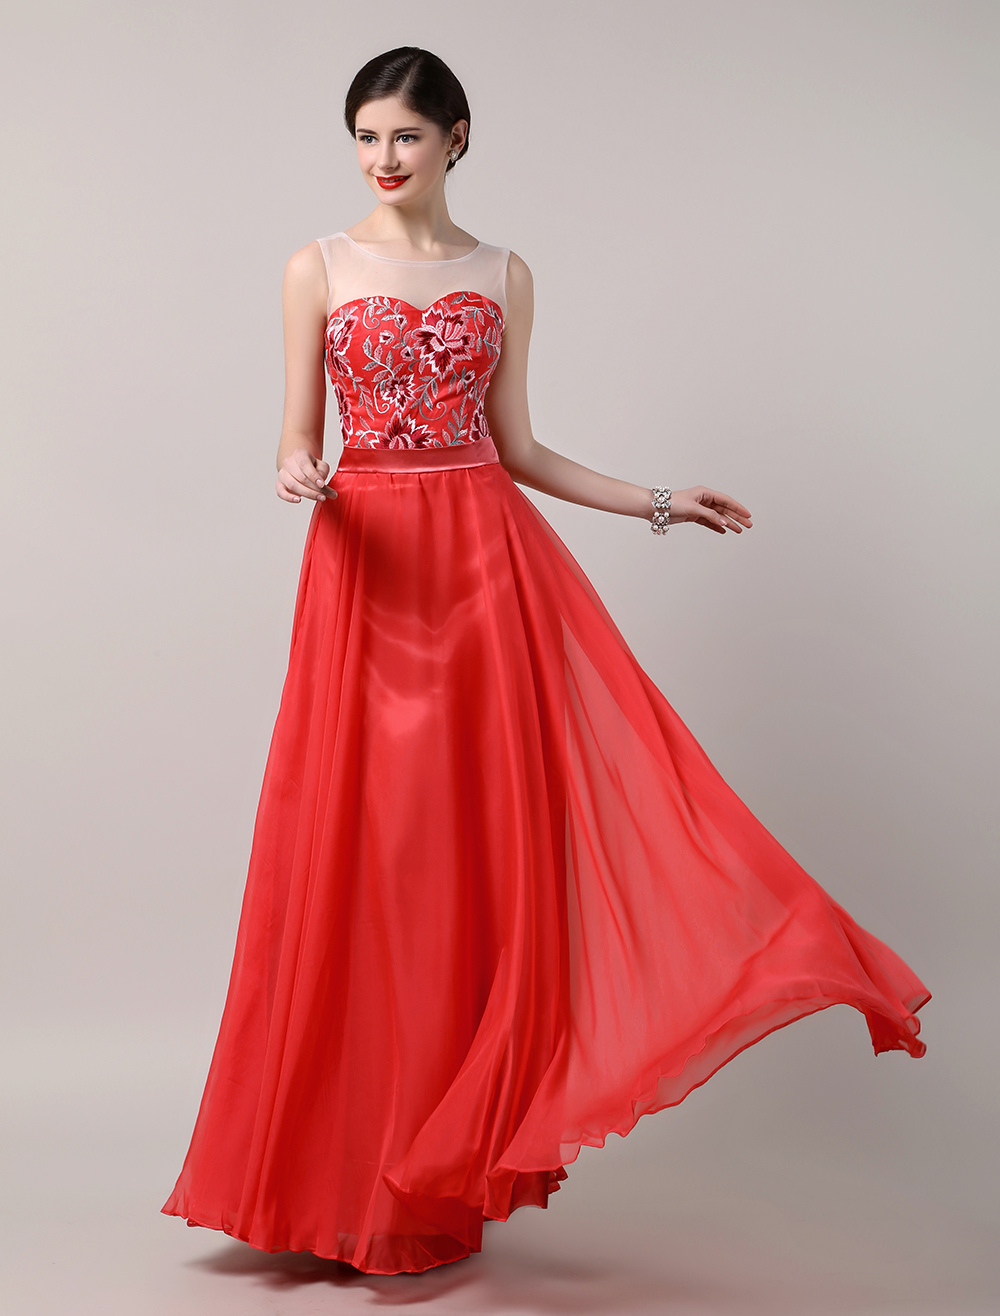 Exquisite Embroidery Red Chiffon Dress with Sheer Tulle Neckline and Back (Wedding Prom Dresses) photo